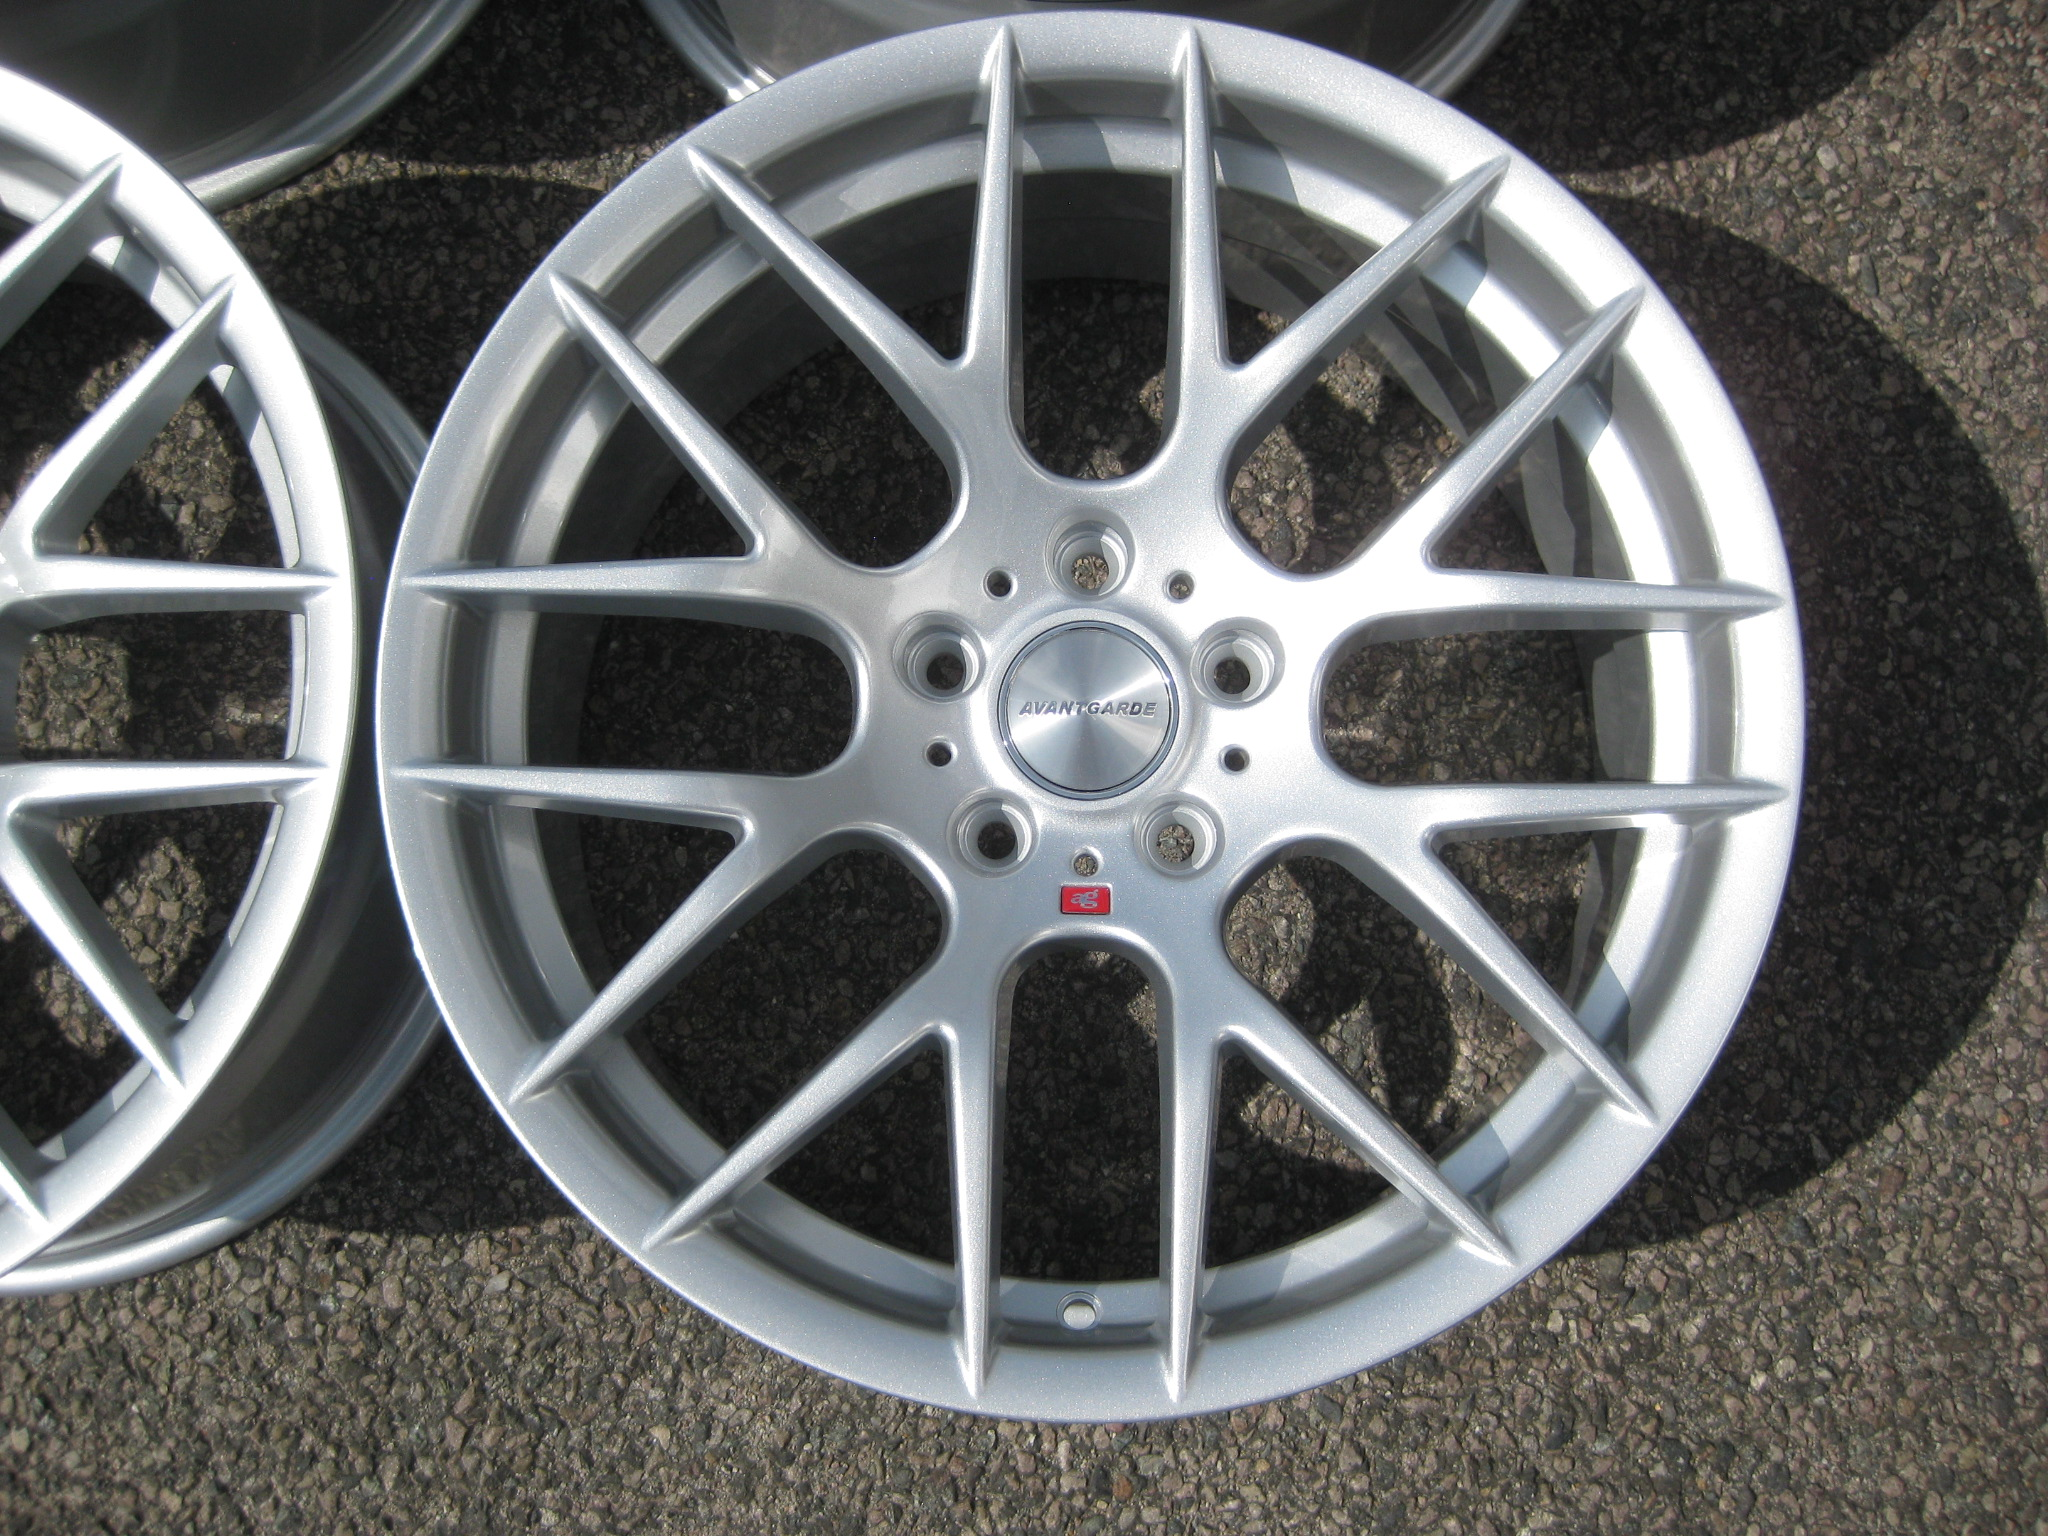 "NEW 18"" AVANT GARDE M359 Y SPOKE ALLOY WHEELS IN QUARTZ SILVER DEEPER CONCAVE 9.5"" REAR"